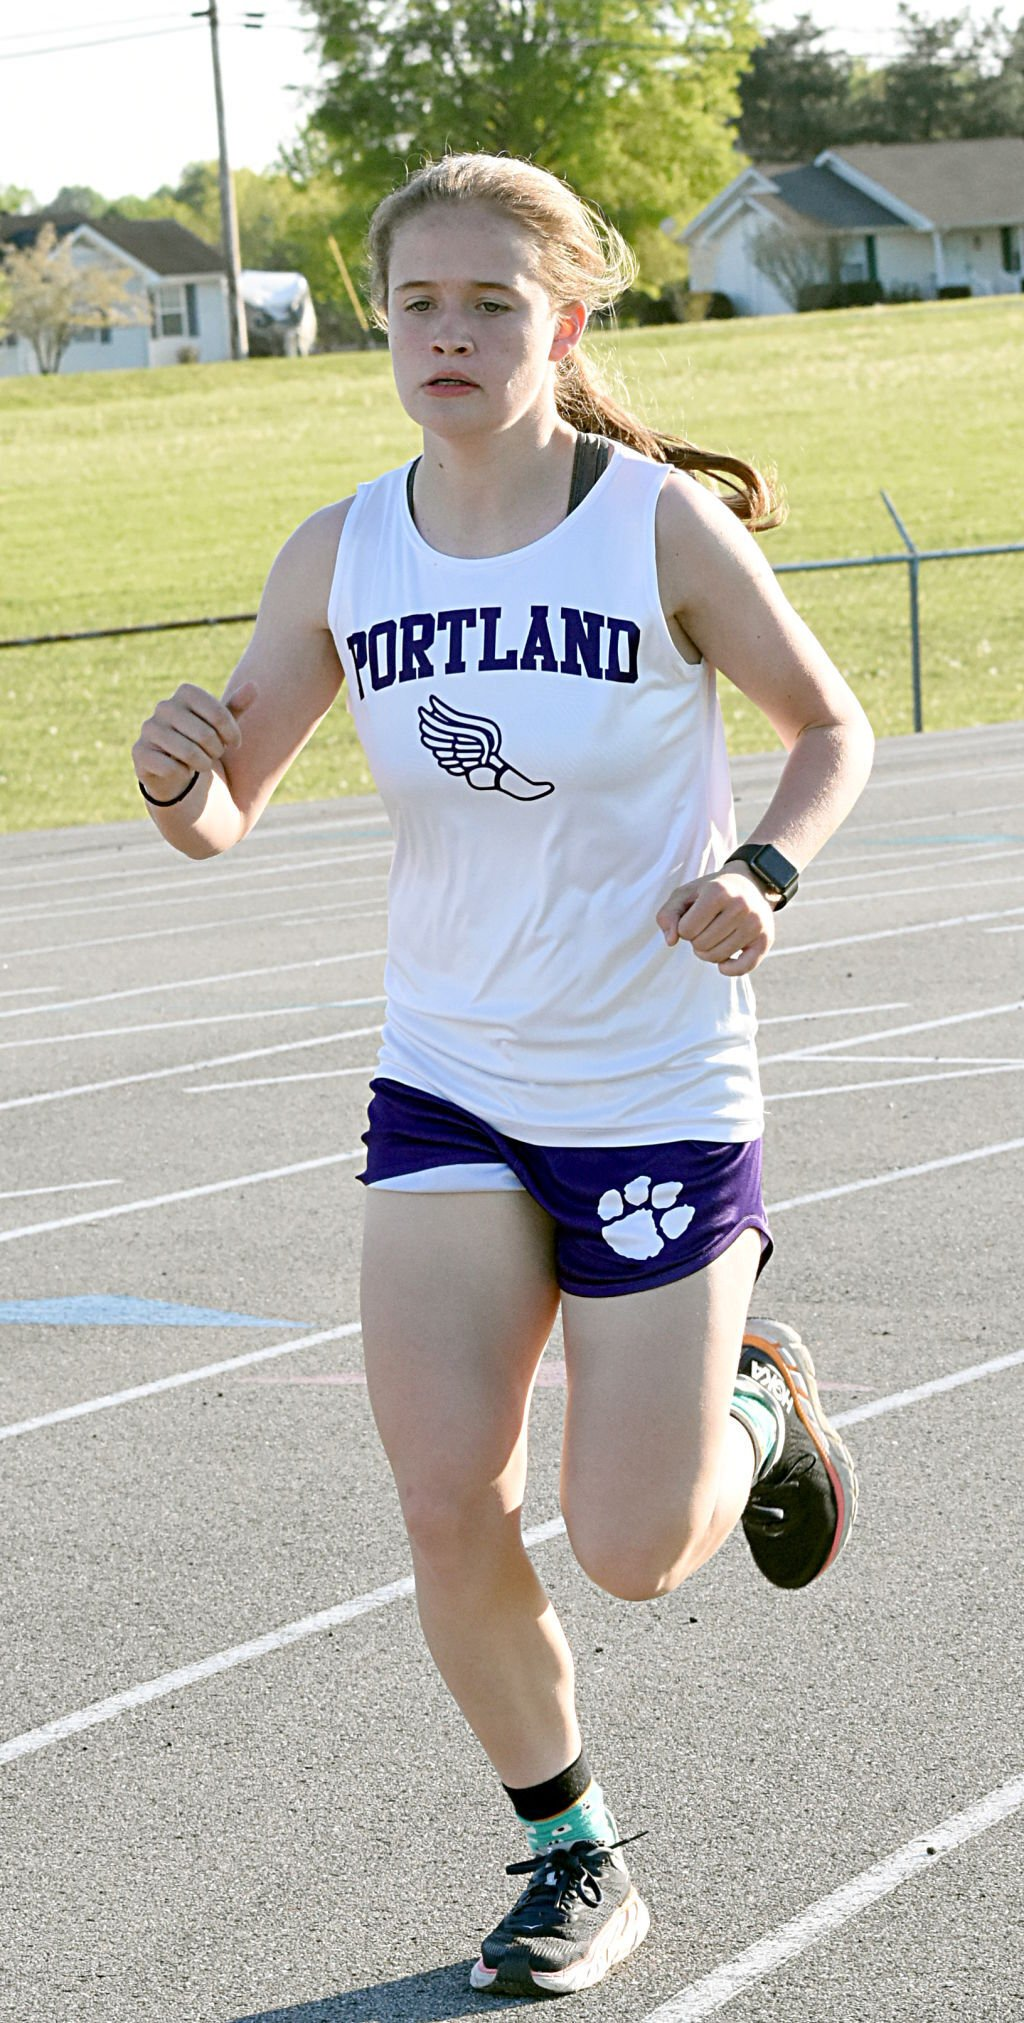 PHS TRACK AND FIELD PHOTO 8